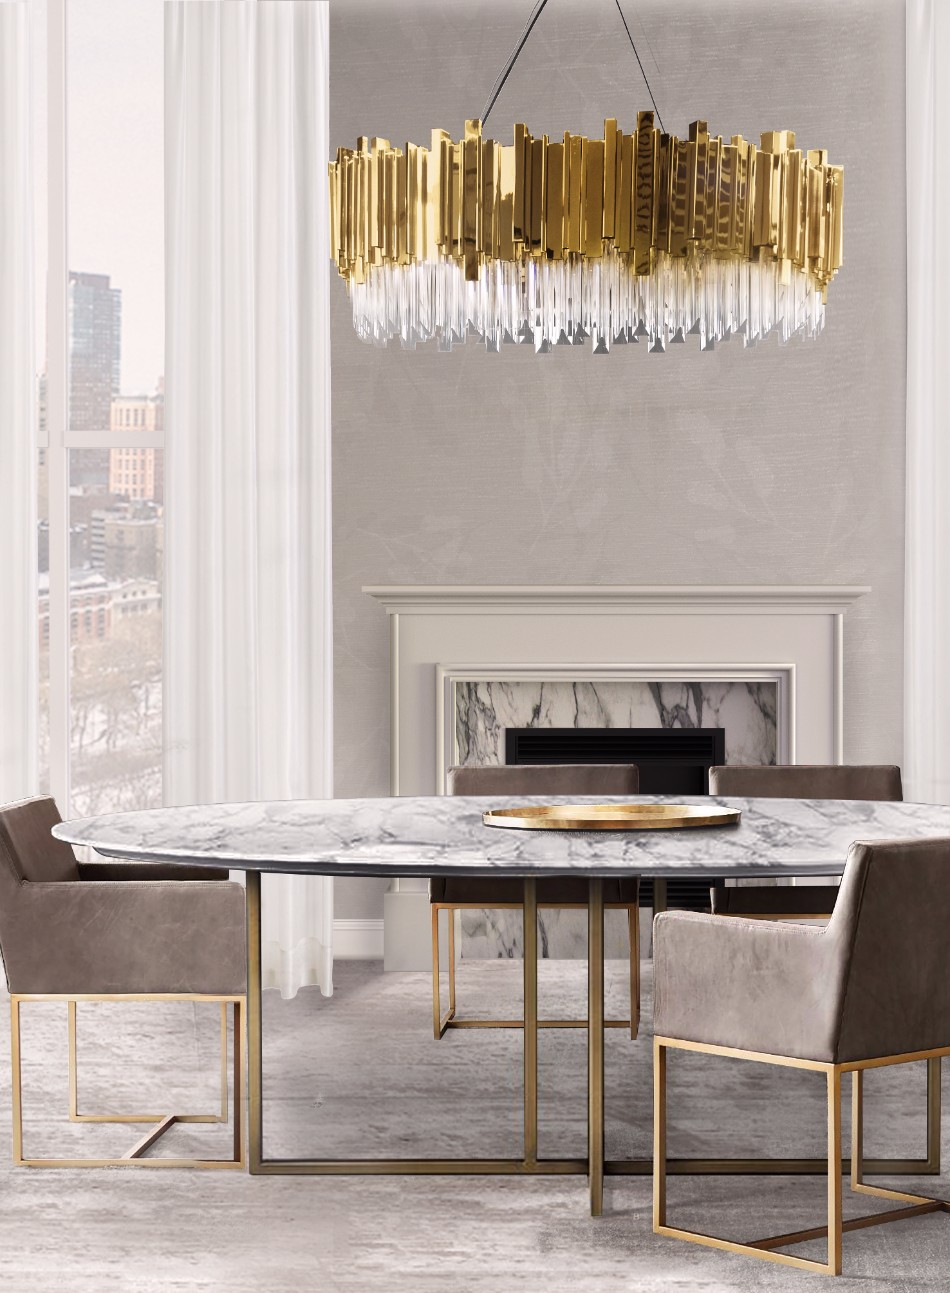 TOP 15 Modern Dining Tables on Pinterest | www.bocadolobo.com #diningtables #diningroom #thediningroom #diningarea #diningareadesign #exclusivedesign #pinterest #interiordesign #interiordesigner #tables #luxuryfurniture #luxurydesign #luxurybrands #luxury #luxurious #bestbrands #besttables #bestdiningtables #bestdiningrooms modern dining tables TOP 15 Modern Dining Tables on Pinterest TOP 15 Modern Dining Tables on Pinterest 10